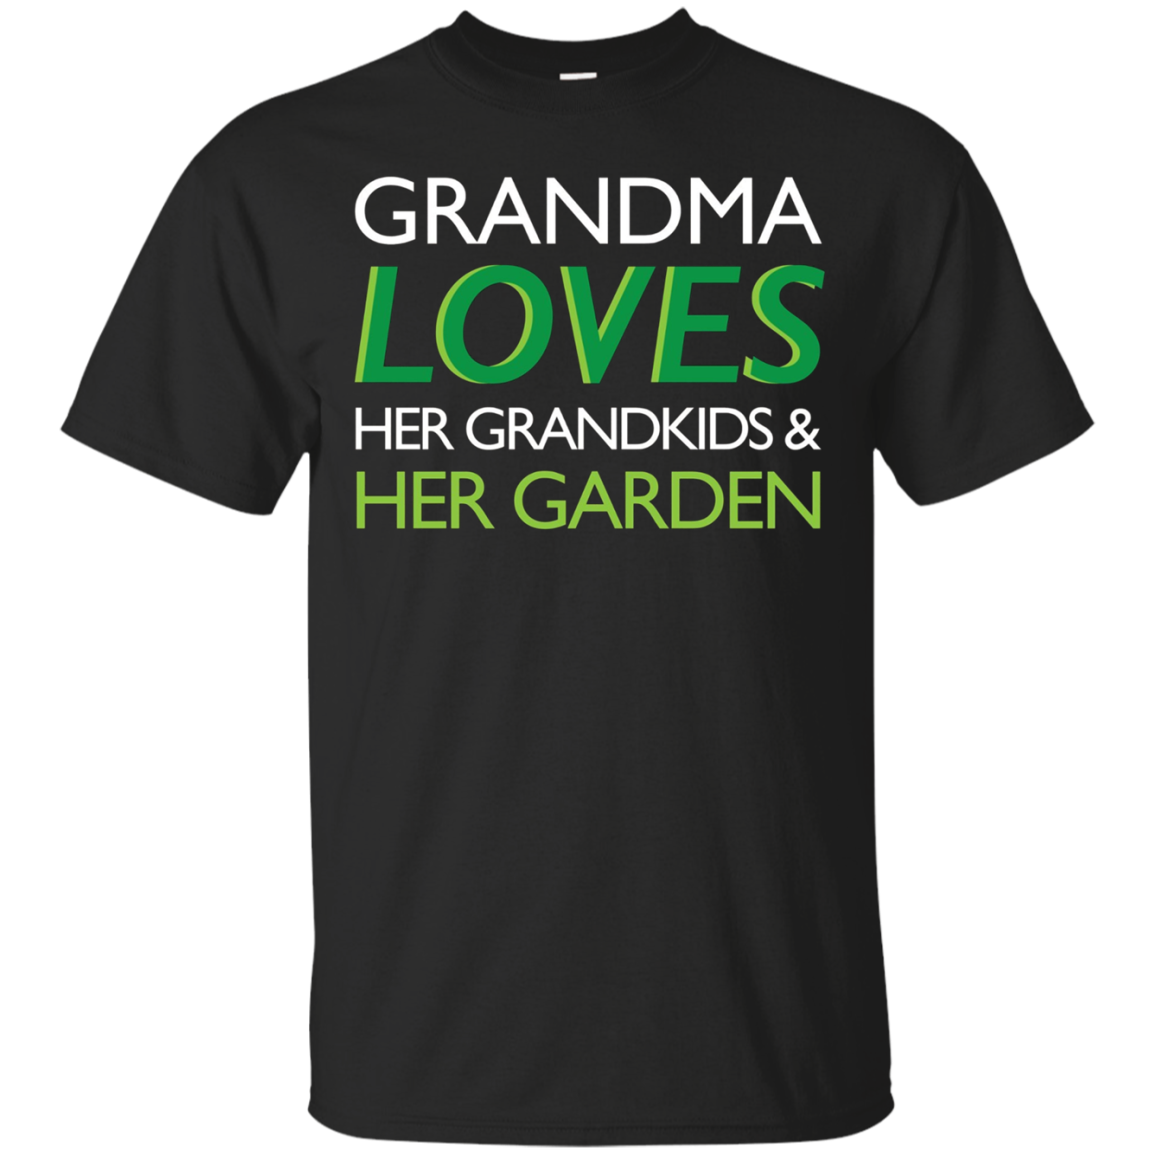 Grandma Loves Her Grandkids And Gardening T Shirt